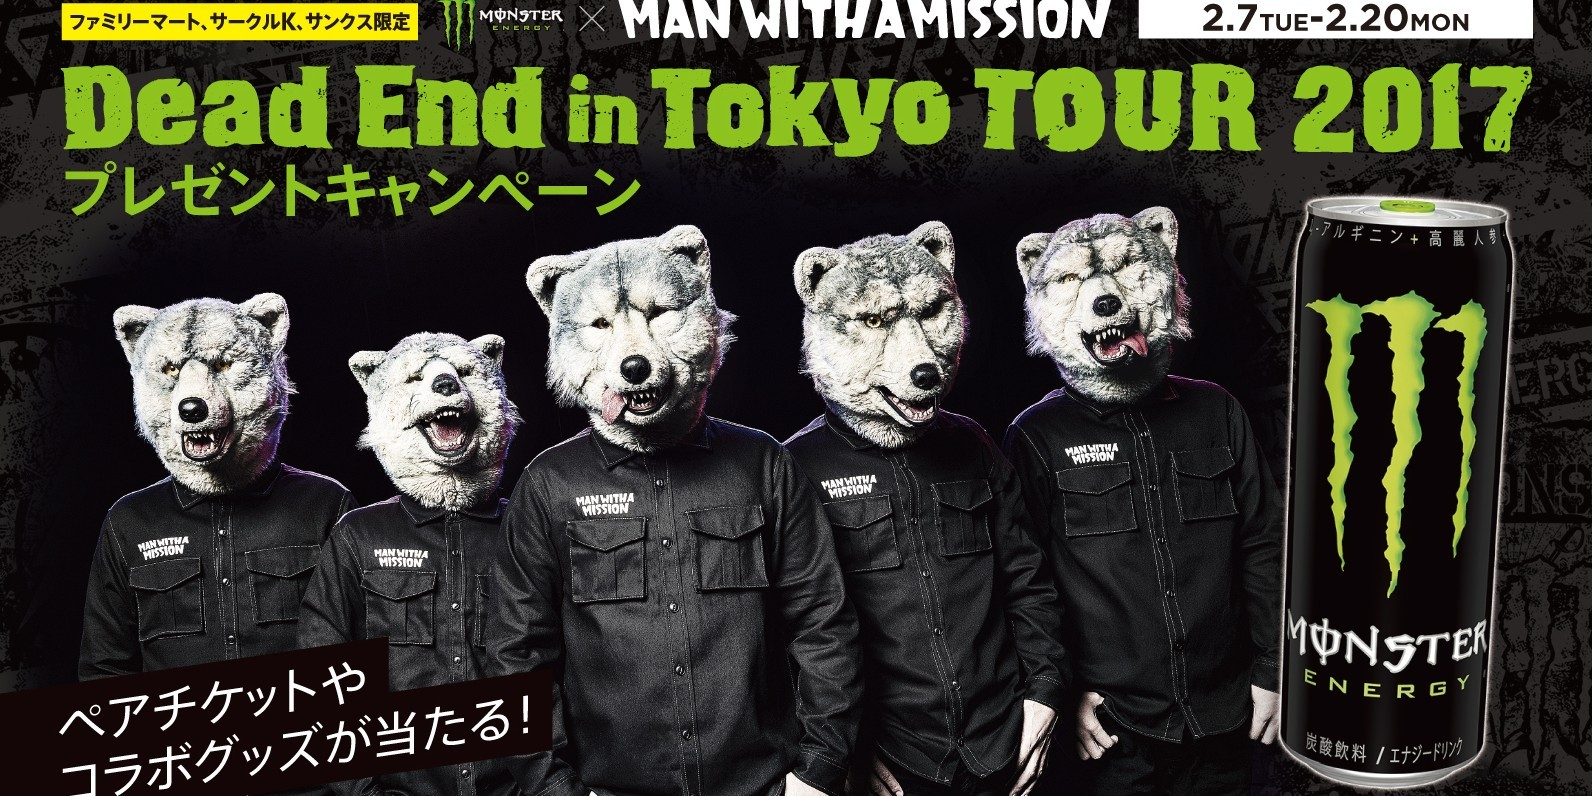 Graphic for MAN WITH A MISSION promotion at Family Mart